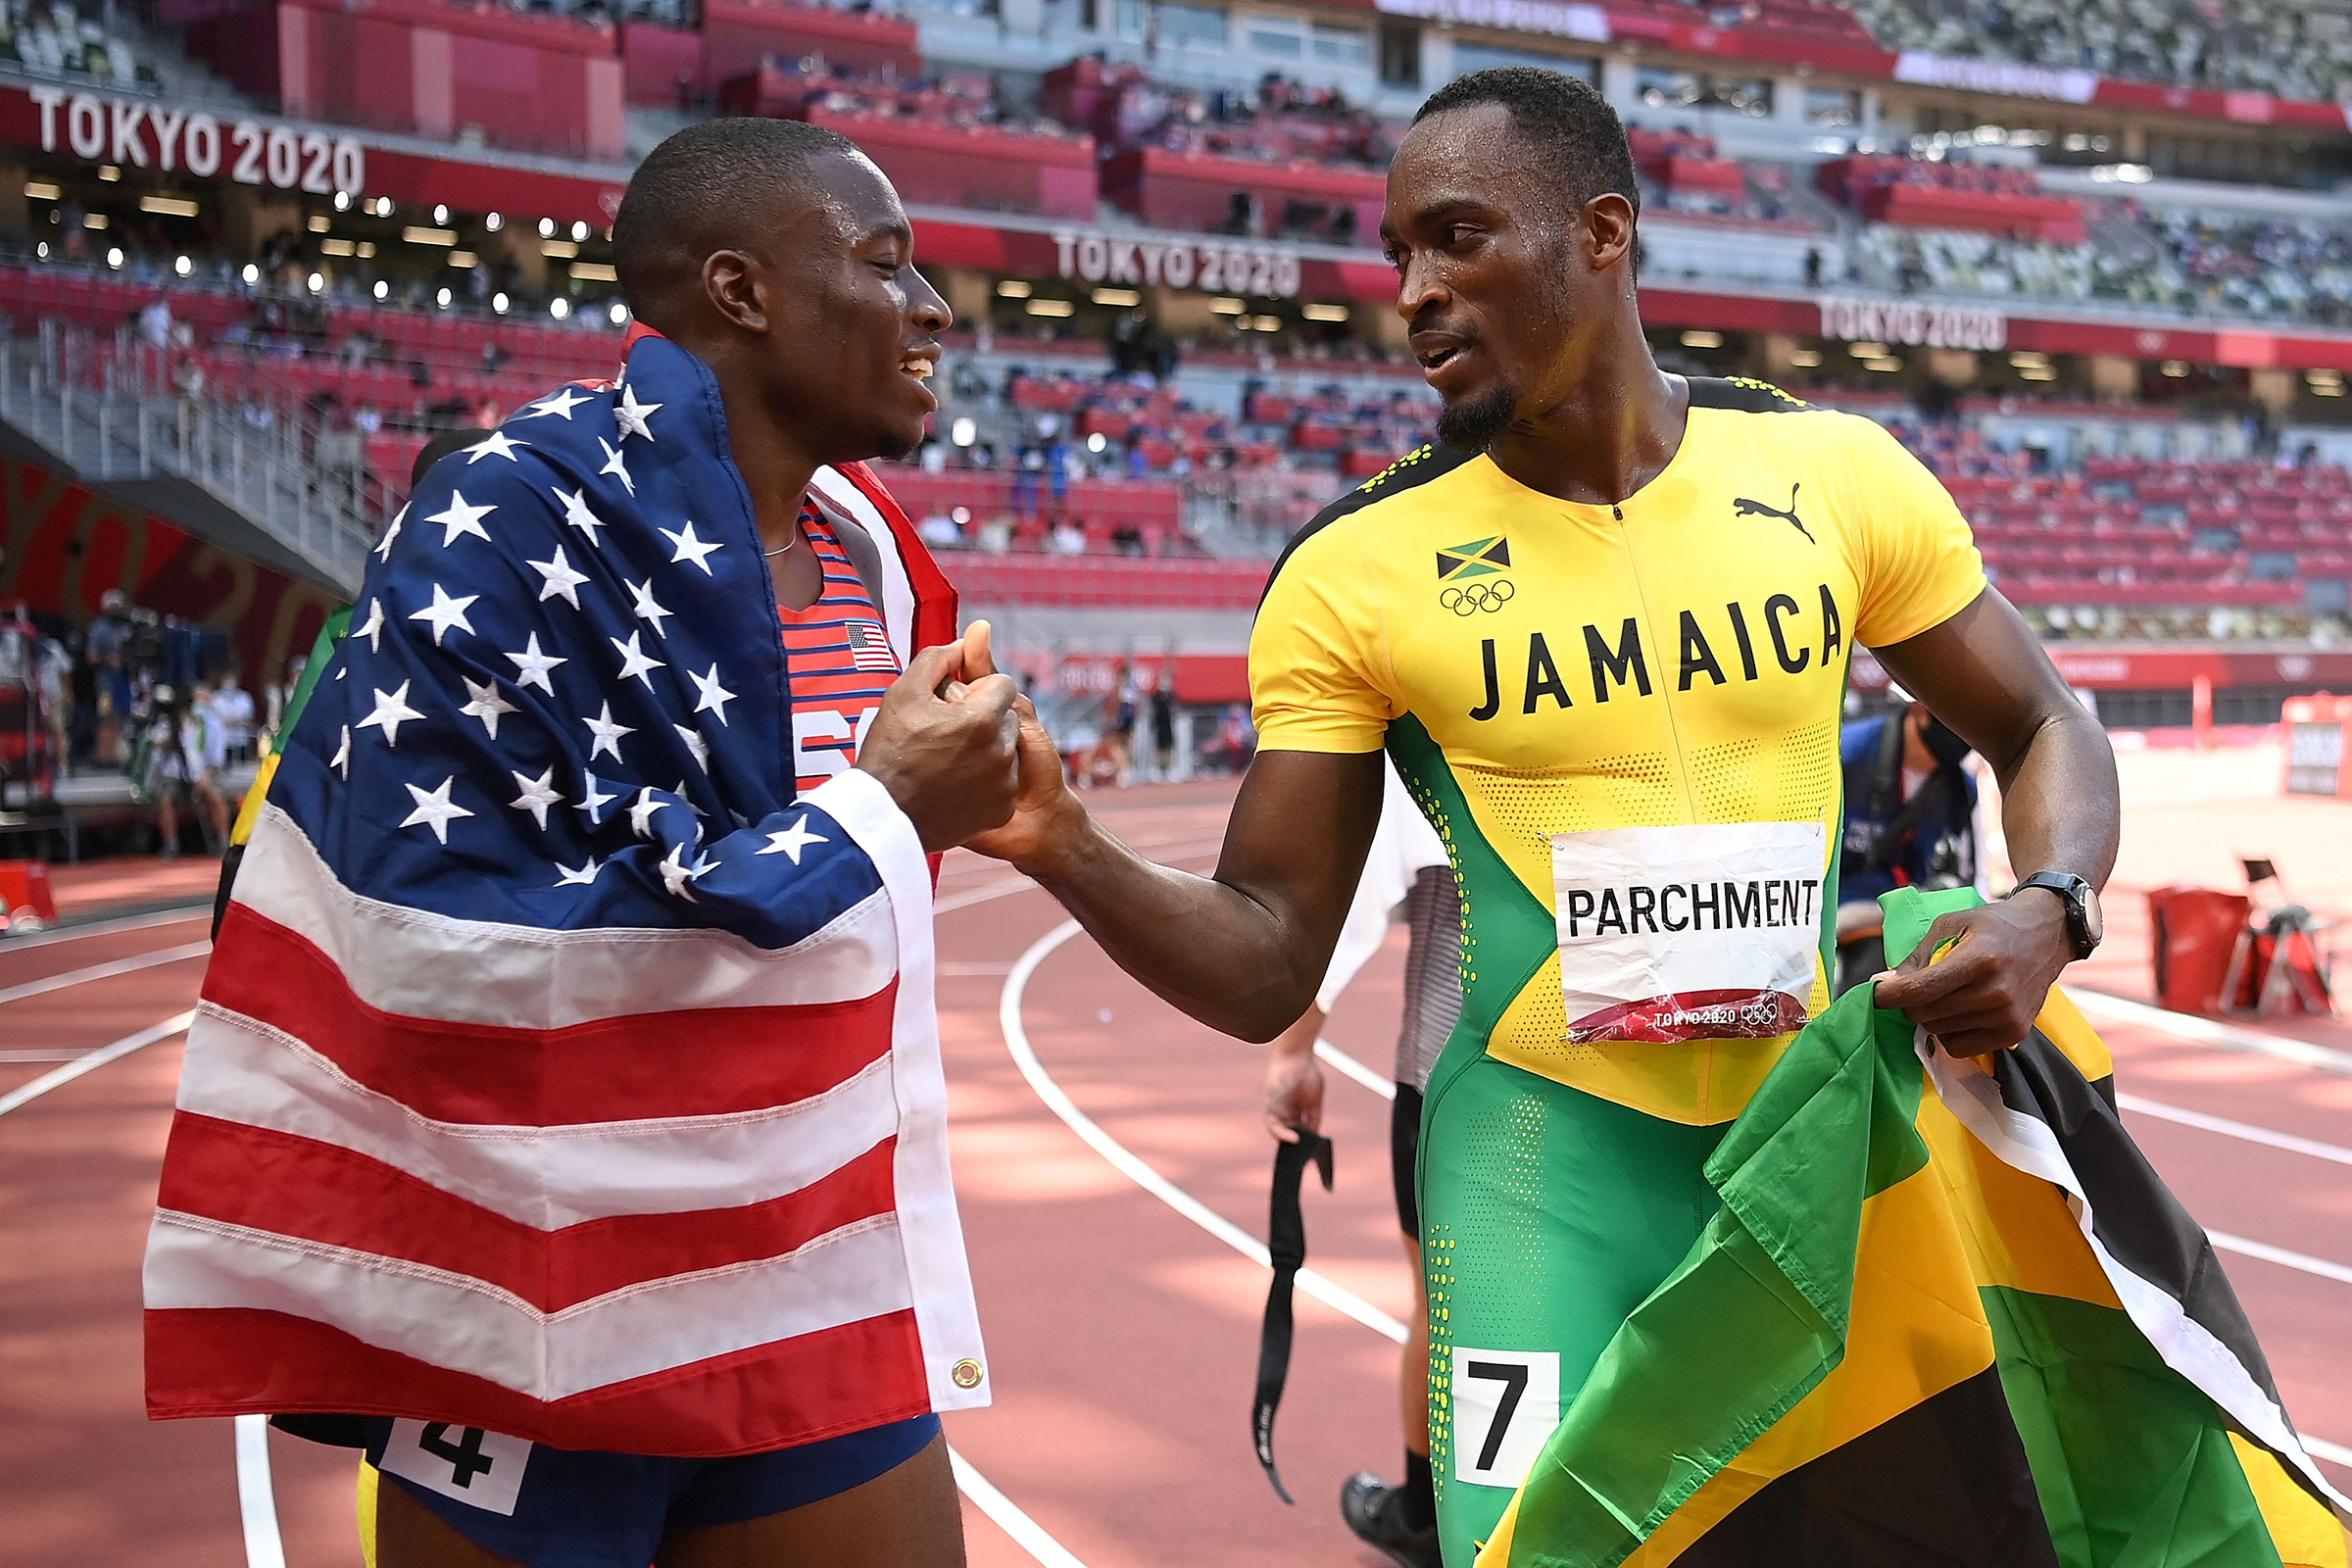 America's Grant Holloway, left, and Jamaica's Hansle Parchment after the 110 meters hurdles final on Thursday, August 5.